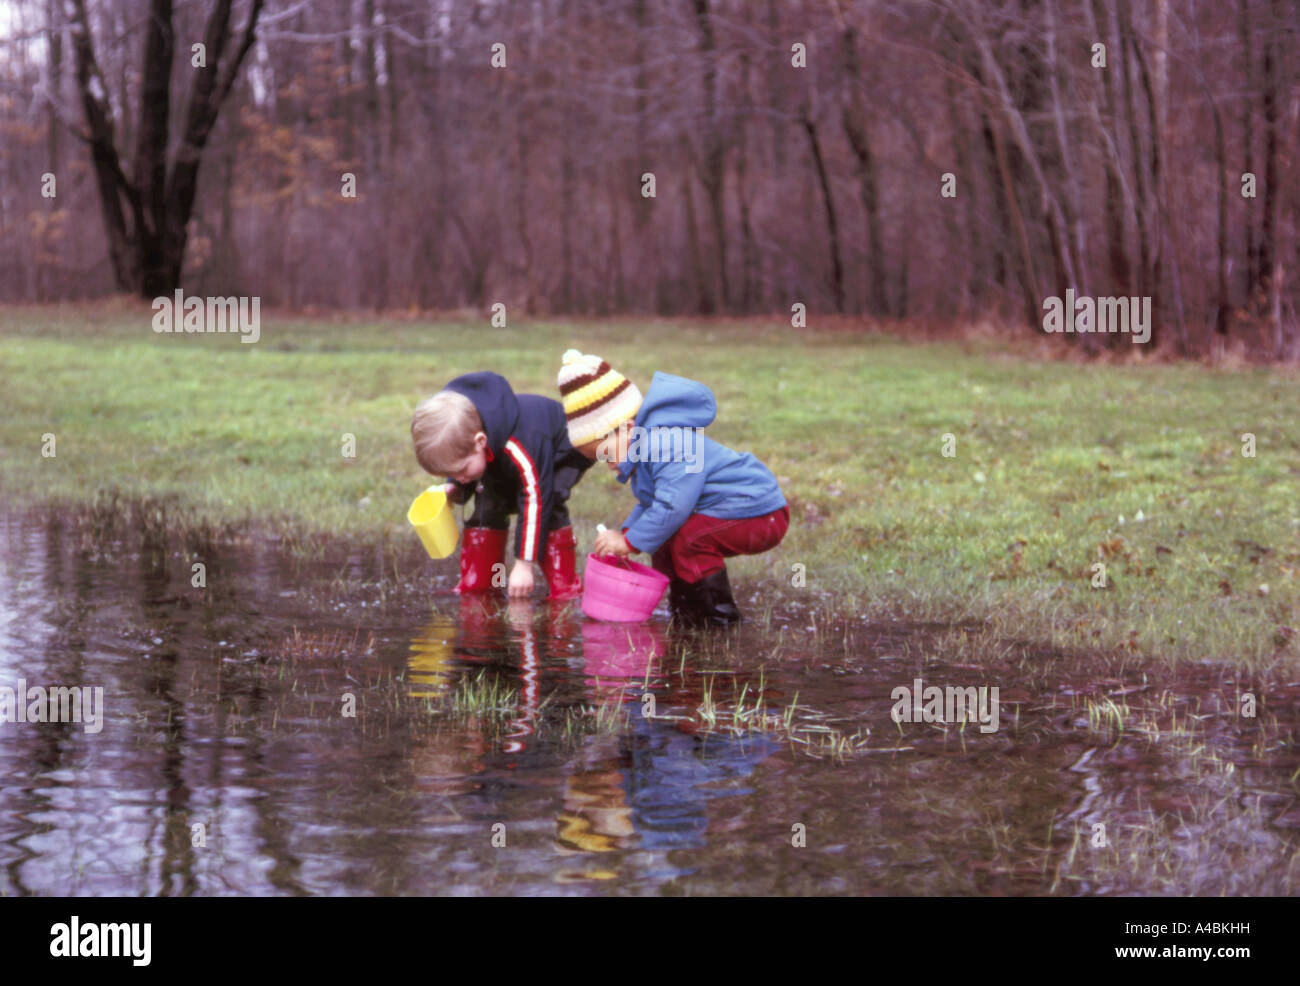 27,091.34100 two boys 3 & 4 years old wading in big rubber boots and cold-weather coats playing in a big water - Stock Image